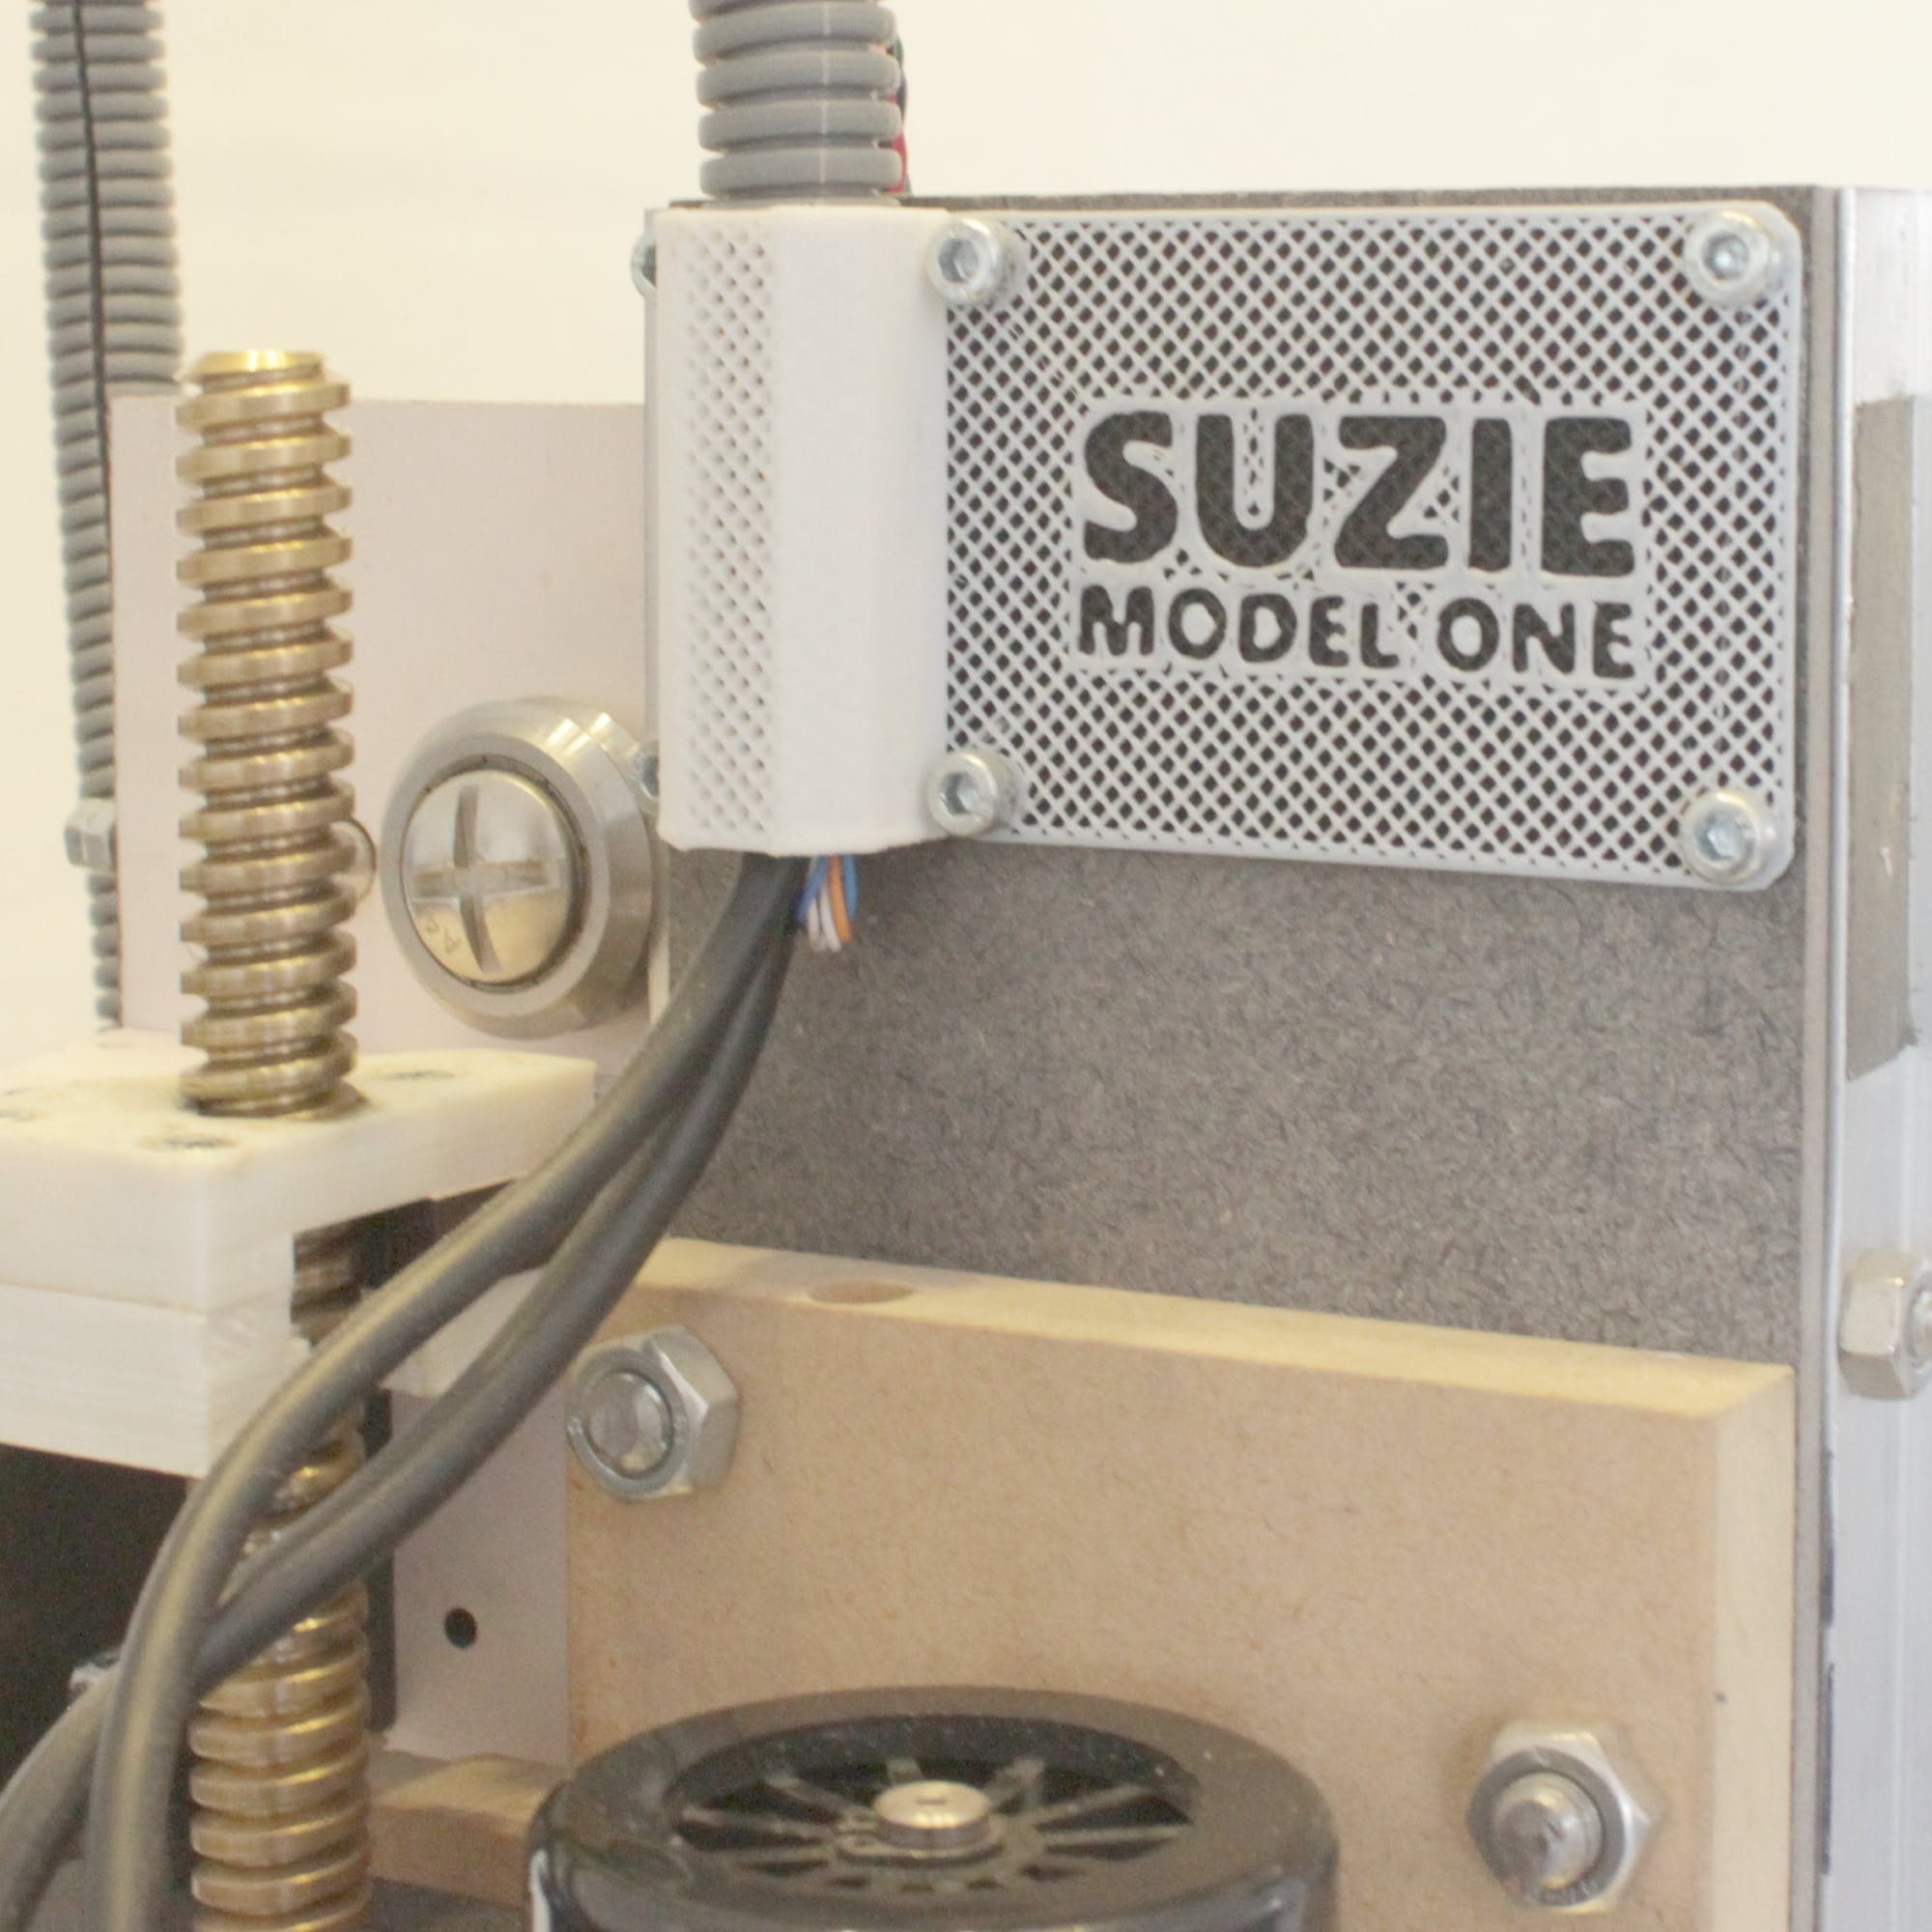 Z lead screw nut (left) and name tag with cable tube holder